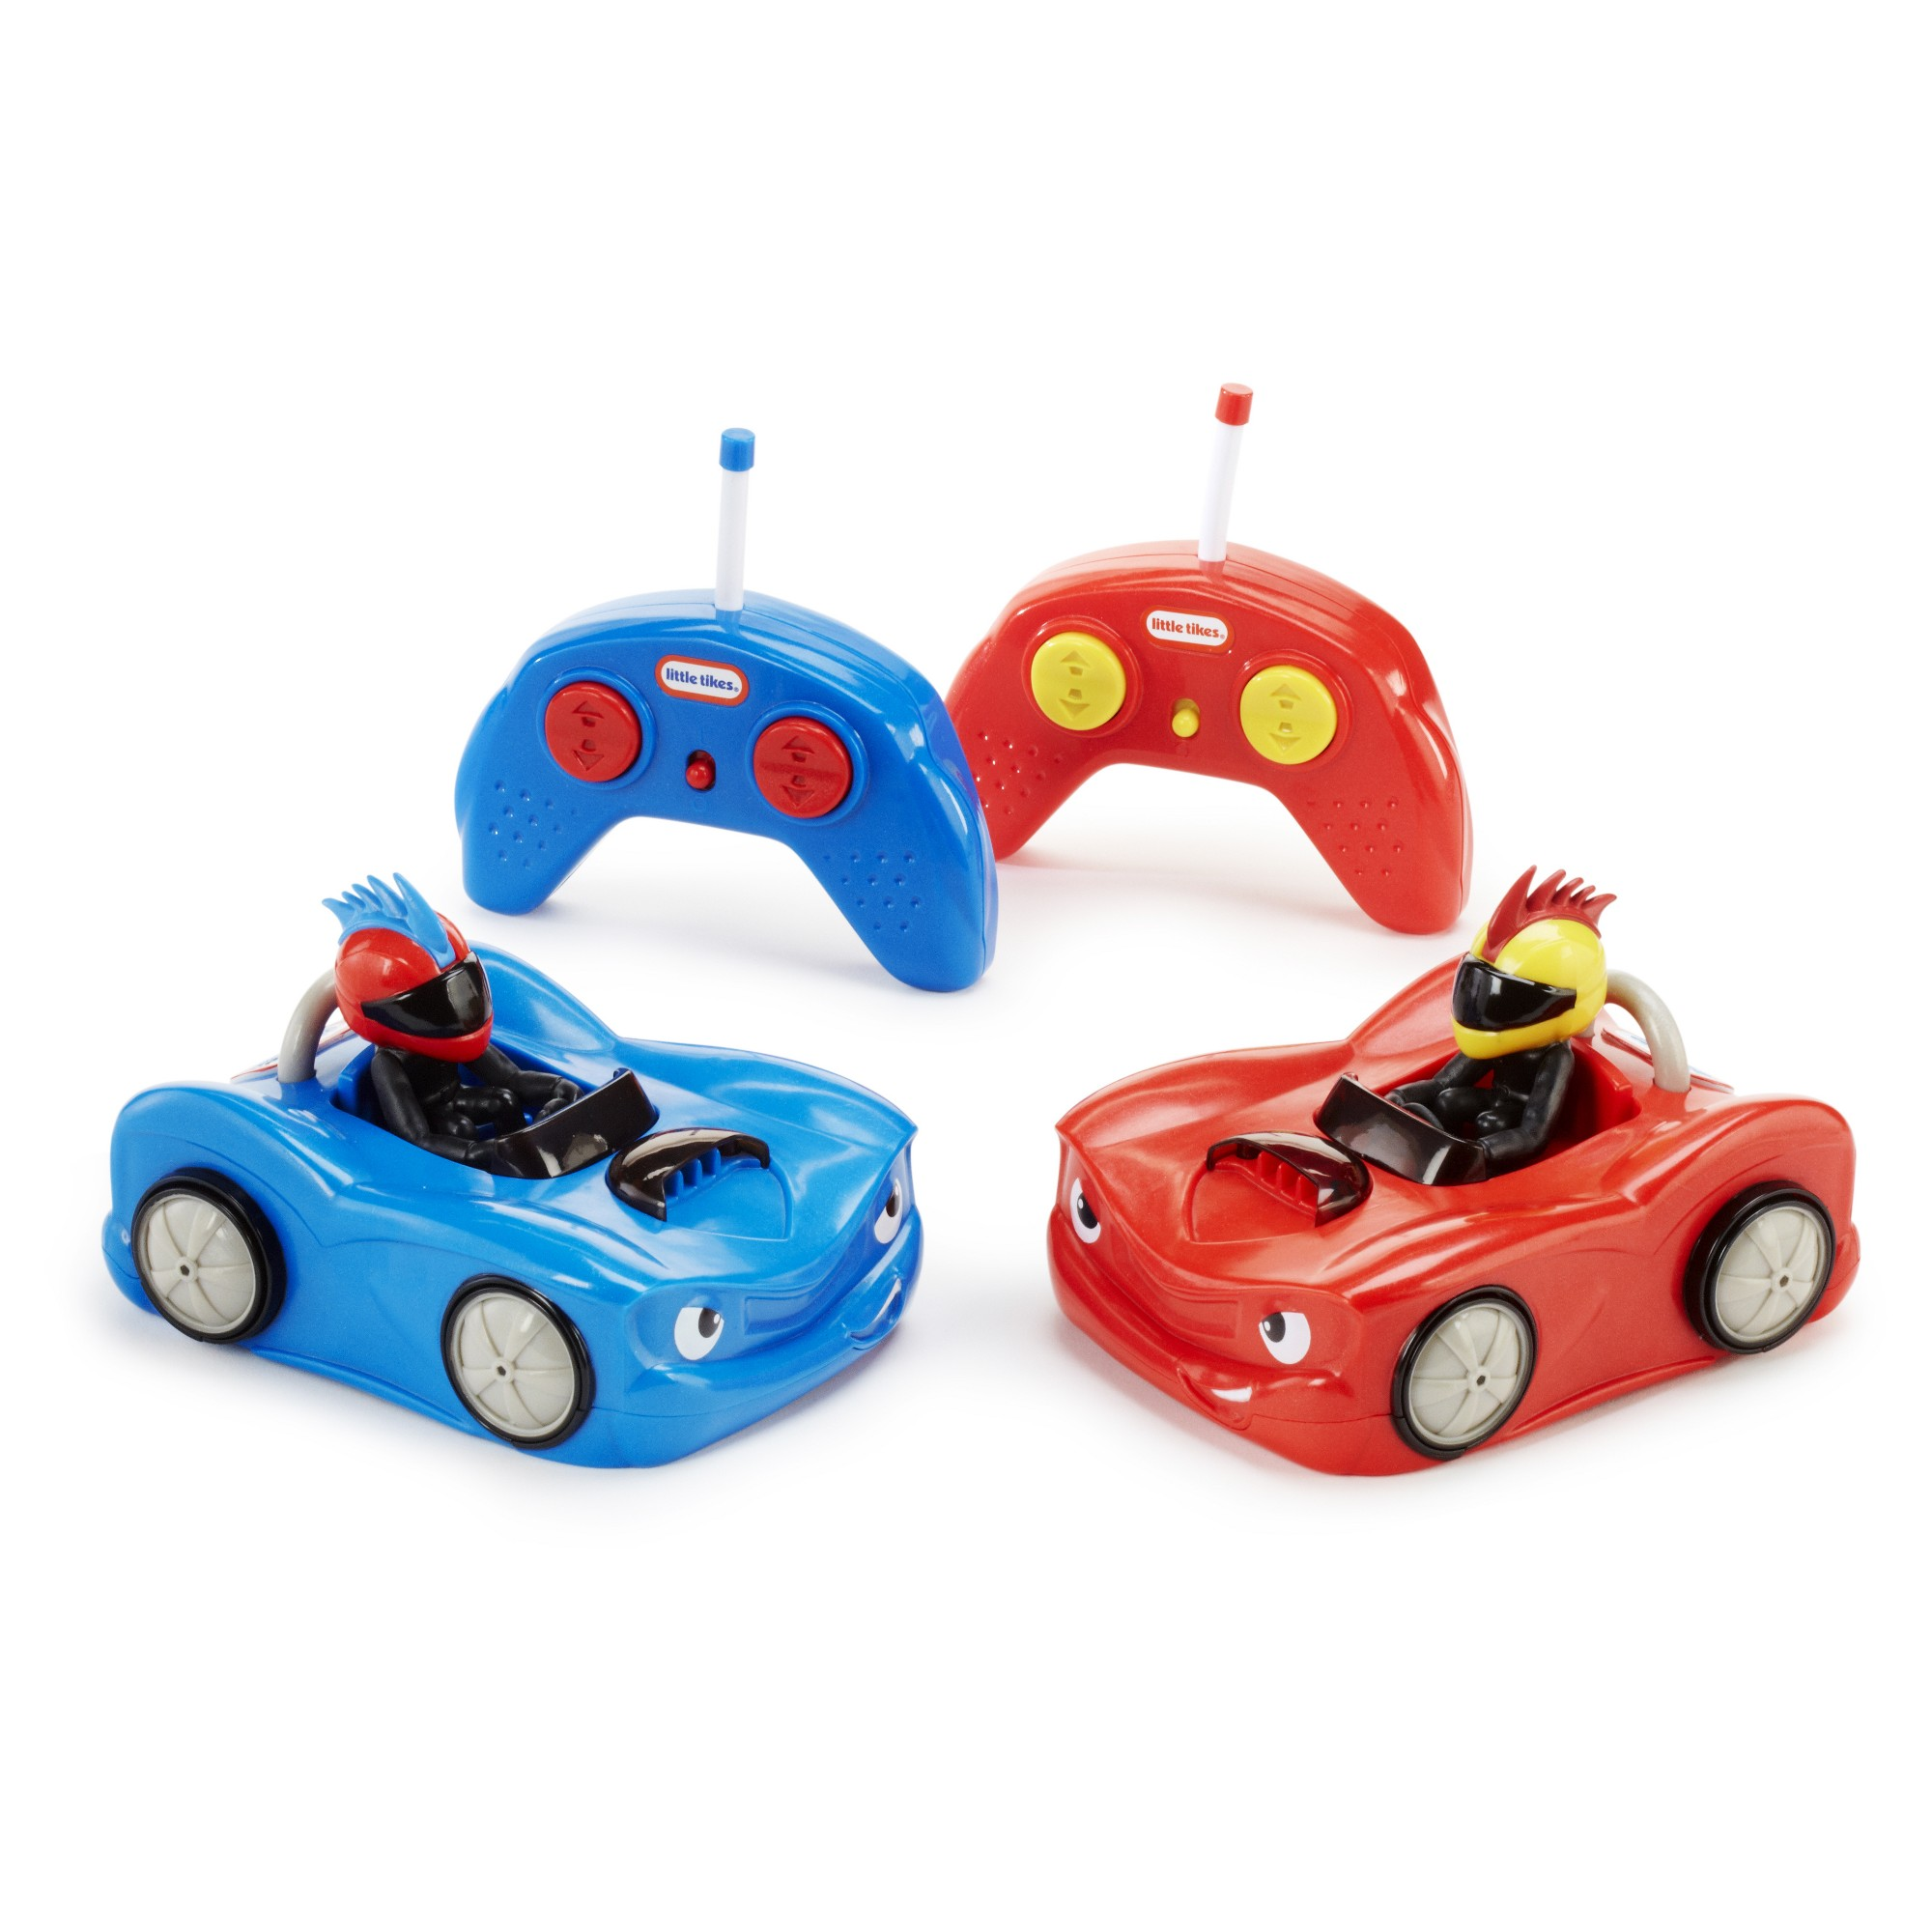 Little Tikes RC Bumper Cars Set of 2 | Products